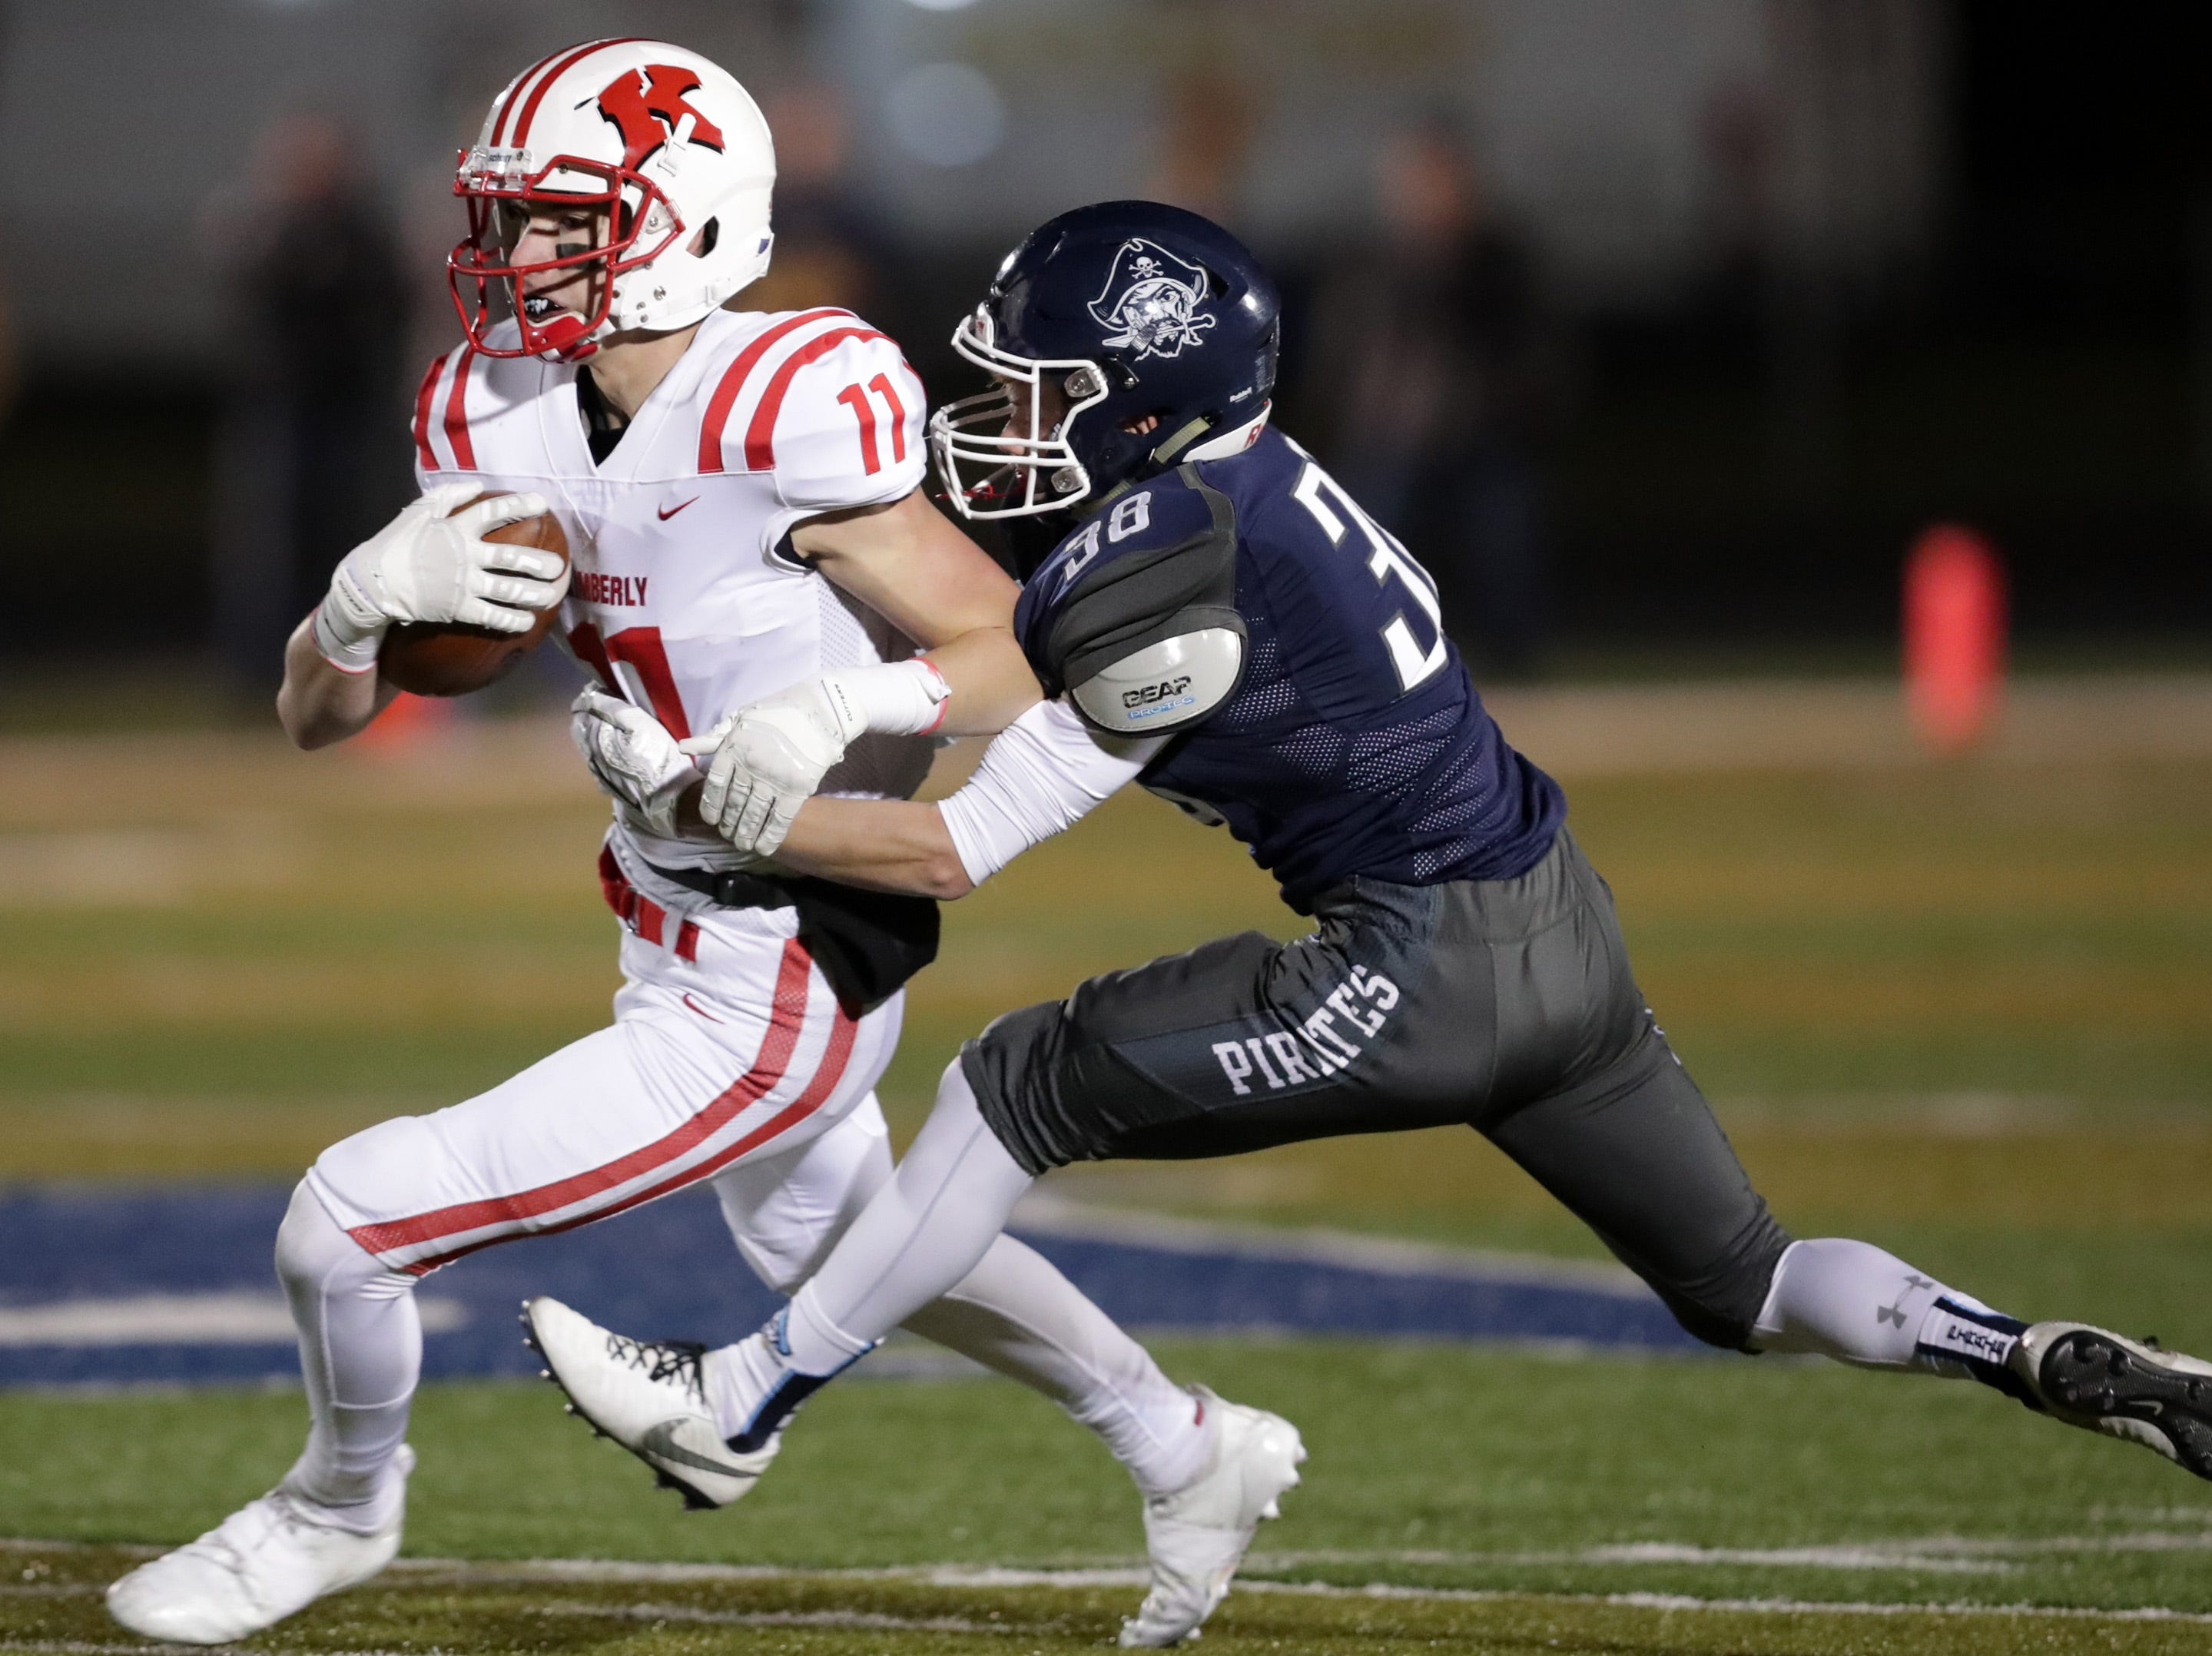 Kimberly High School's #11 Conner Wnek against Bay Port High School's #38 Owen Miller during their WIAA Division 1 state quarterfinal football game on Friday, November 2, 2018, in Suamico, Wis.  Kimberly defeated Bay Port 38 to 20. Wm. Glasheen/USA TODAY NETWORK-Wisconsin.